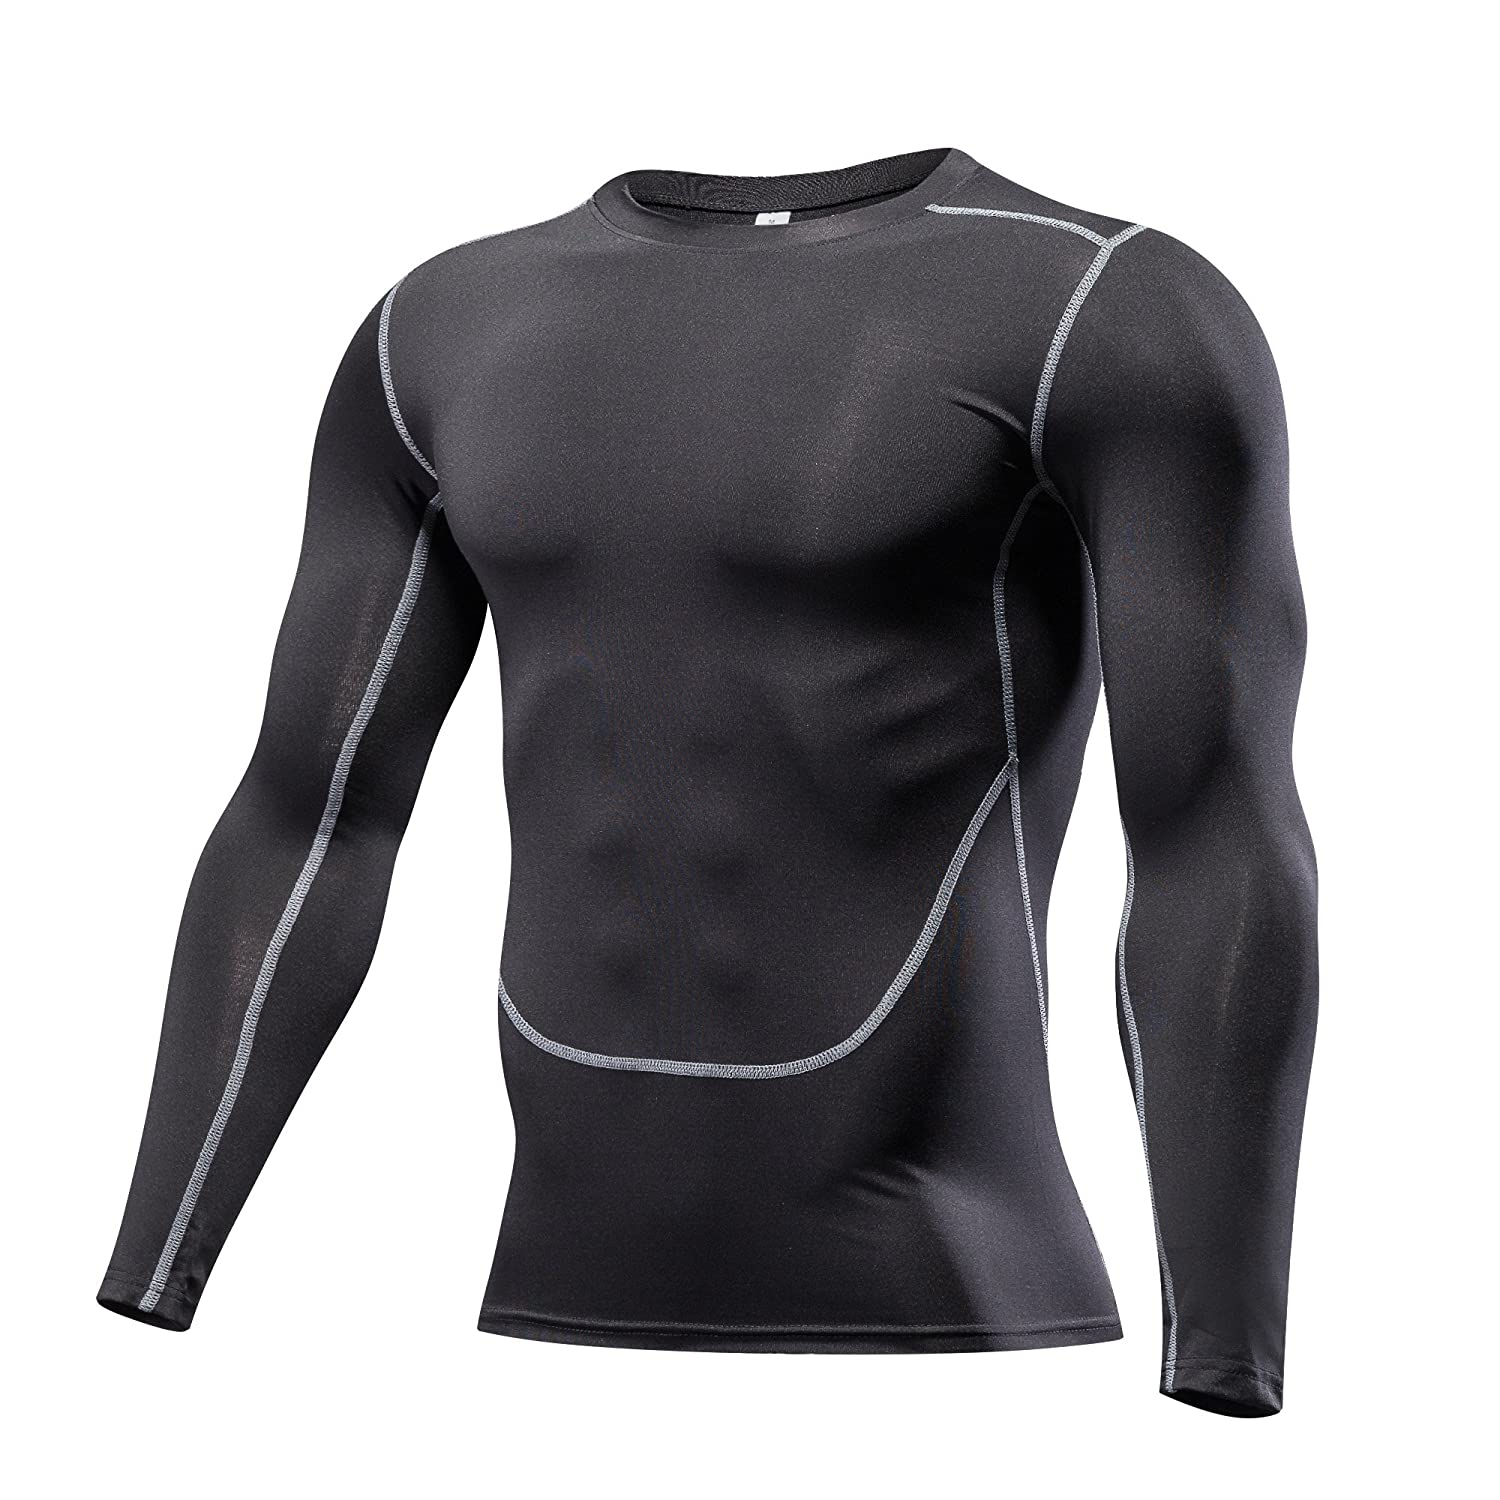 Findci Casual Shirts Mens Long Sleeves Sports Tight Tops Workout Sweatshirt